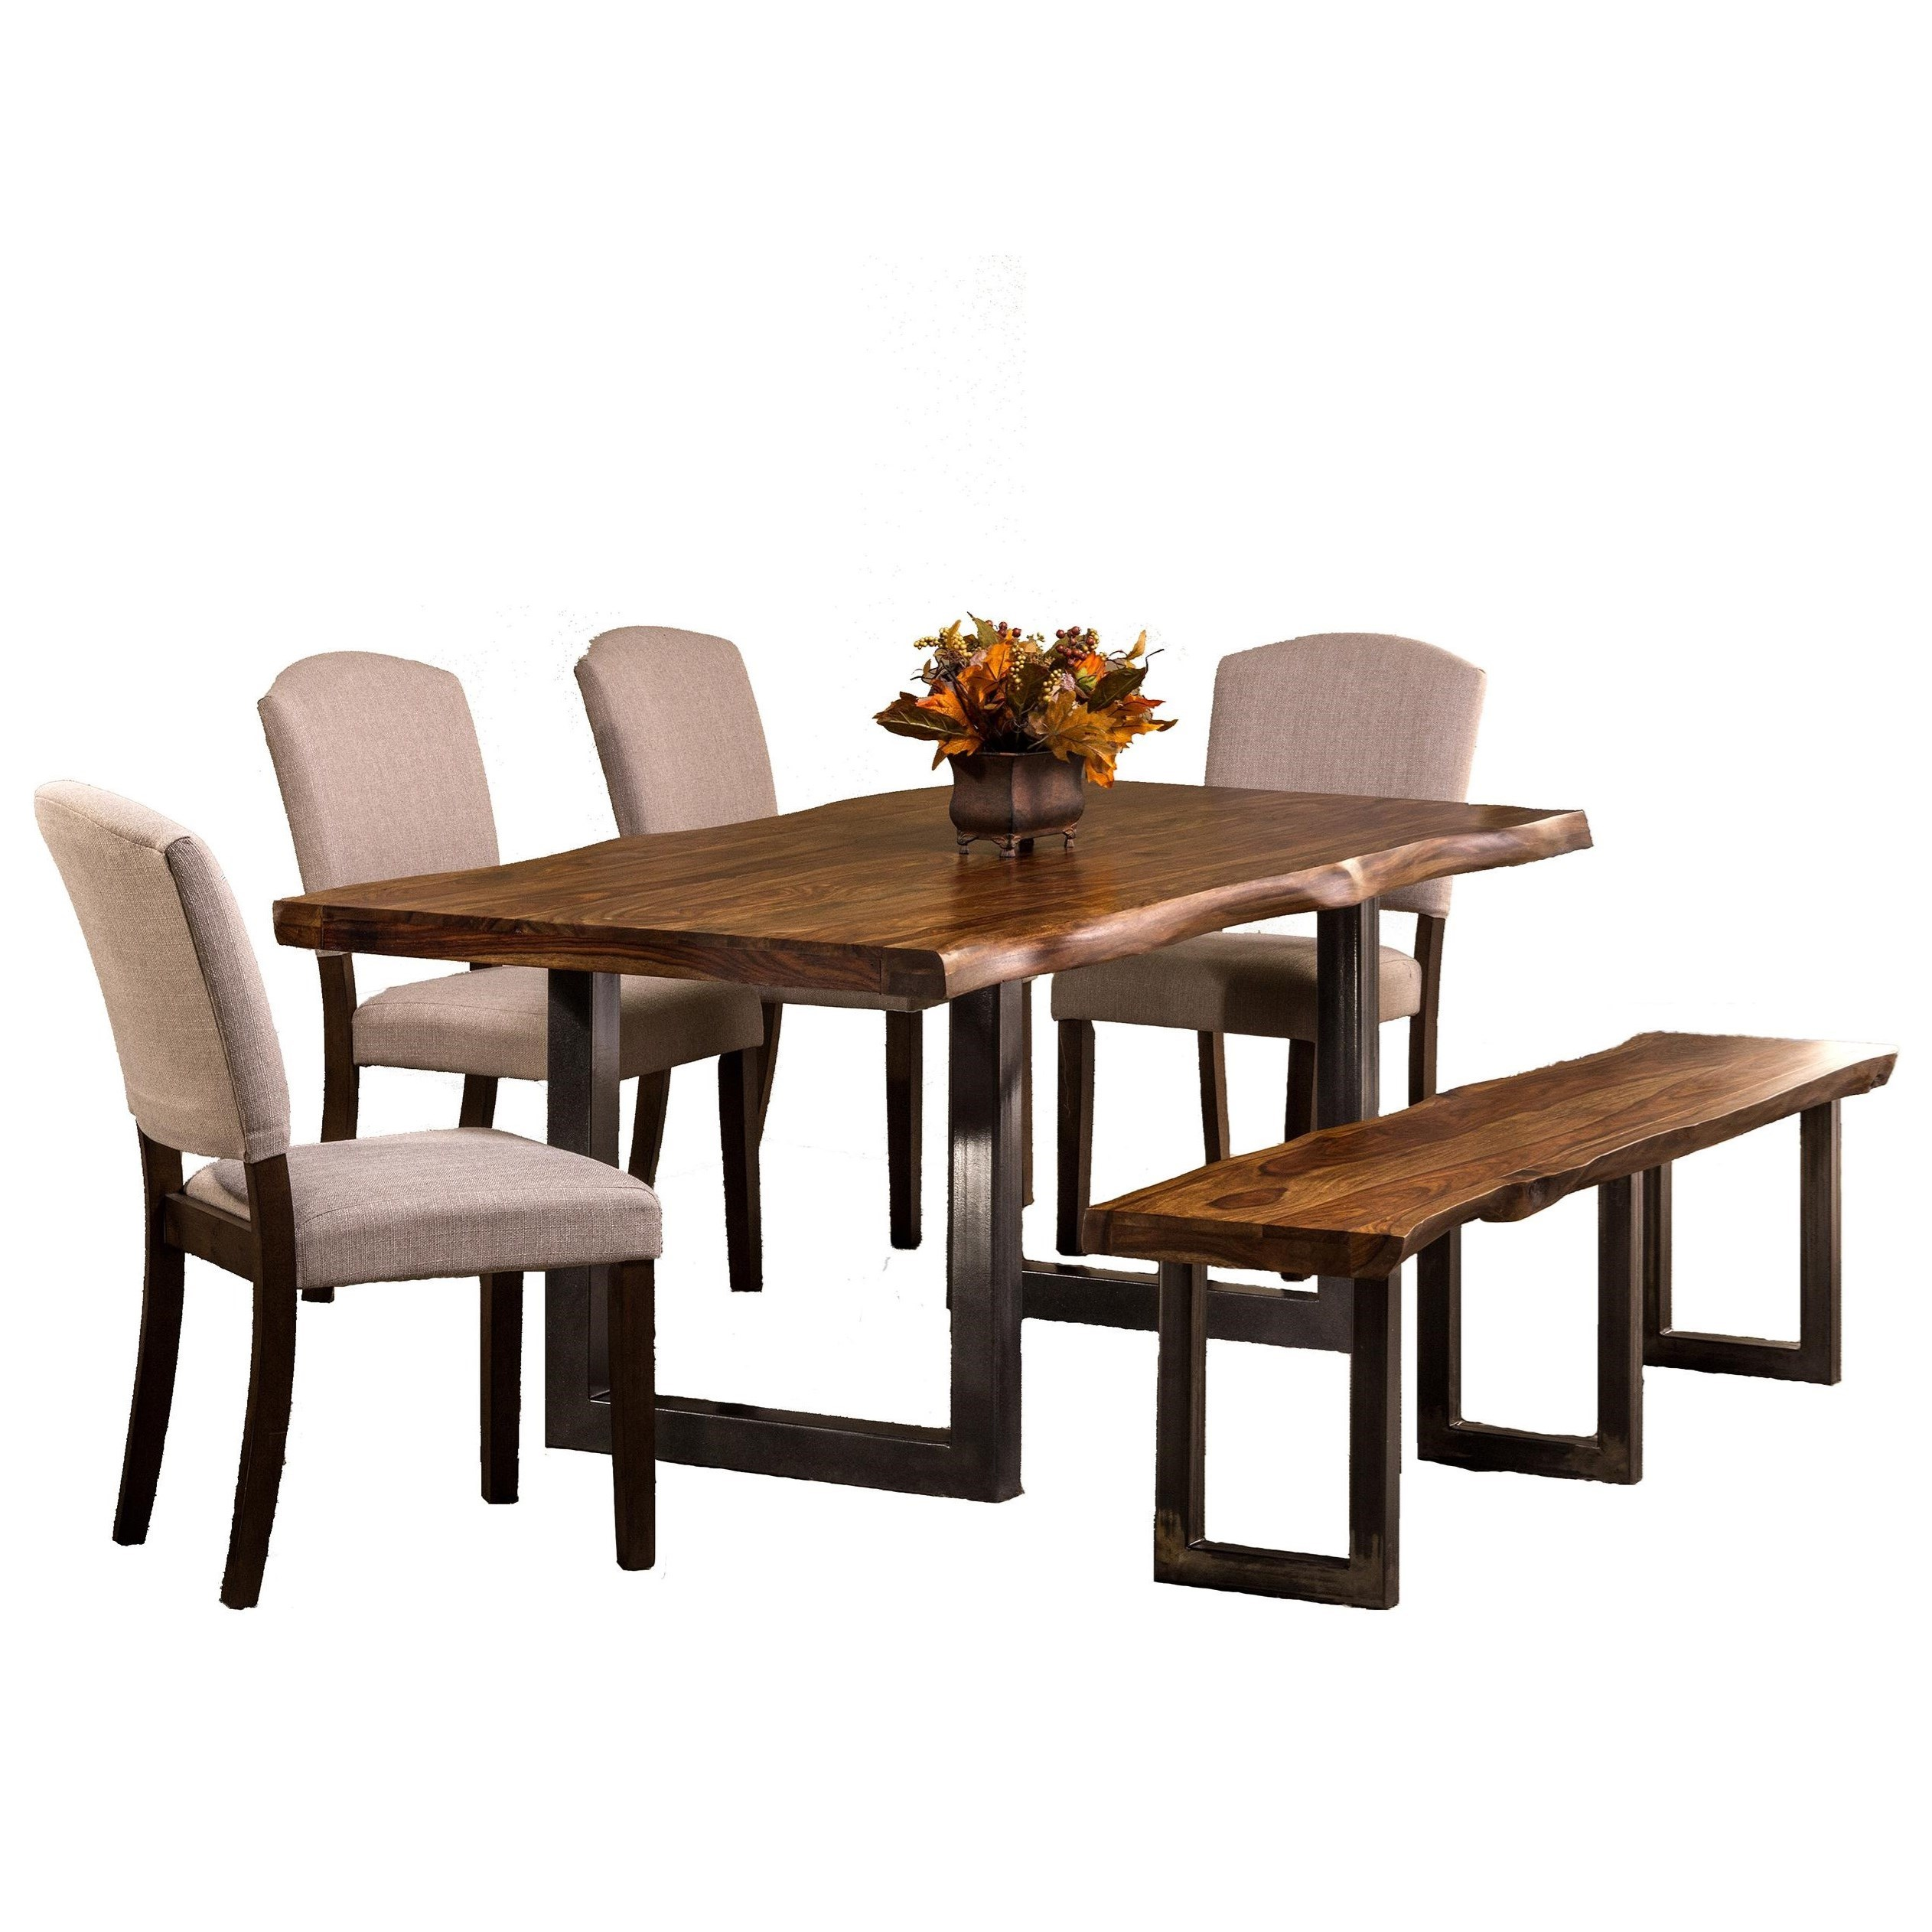 Standard Furniture Cambria Rectangular White Wood And: Natural Sheesham Wood Rectangular Dining Table By